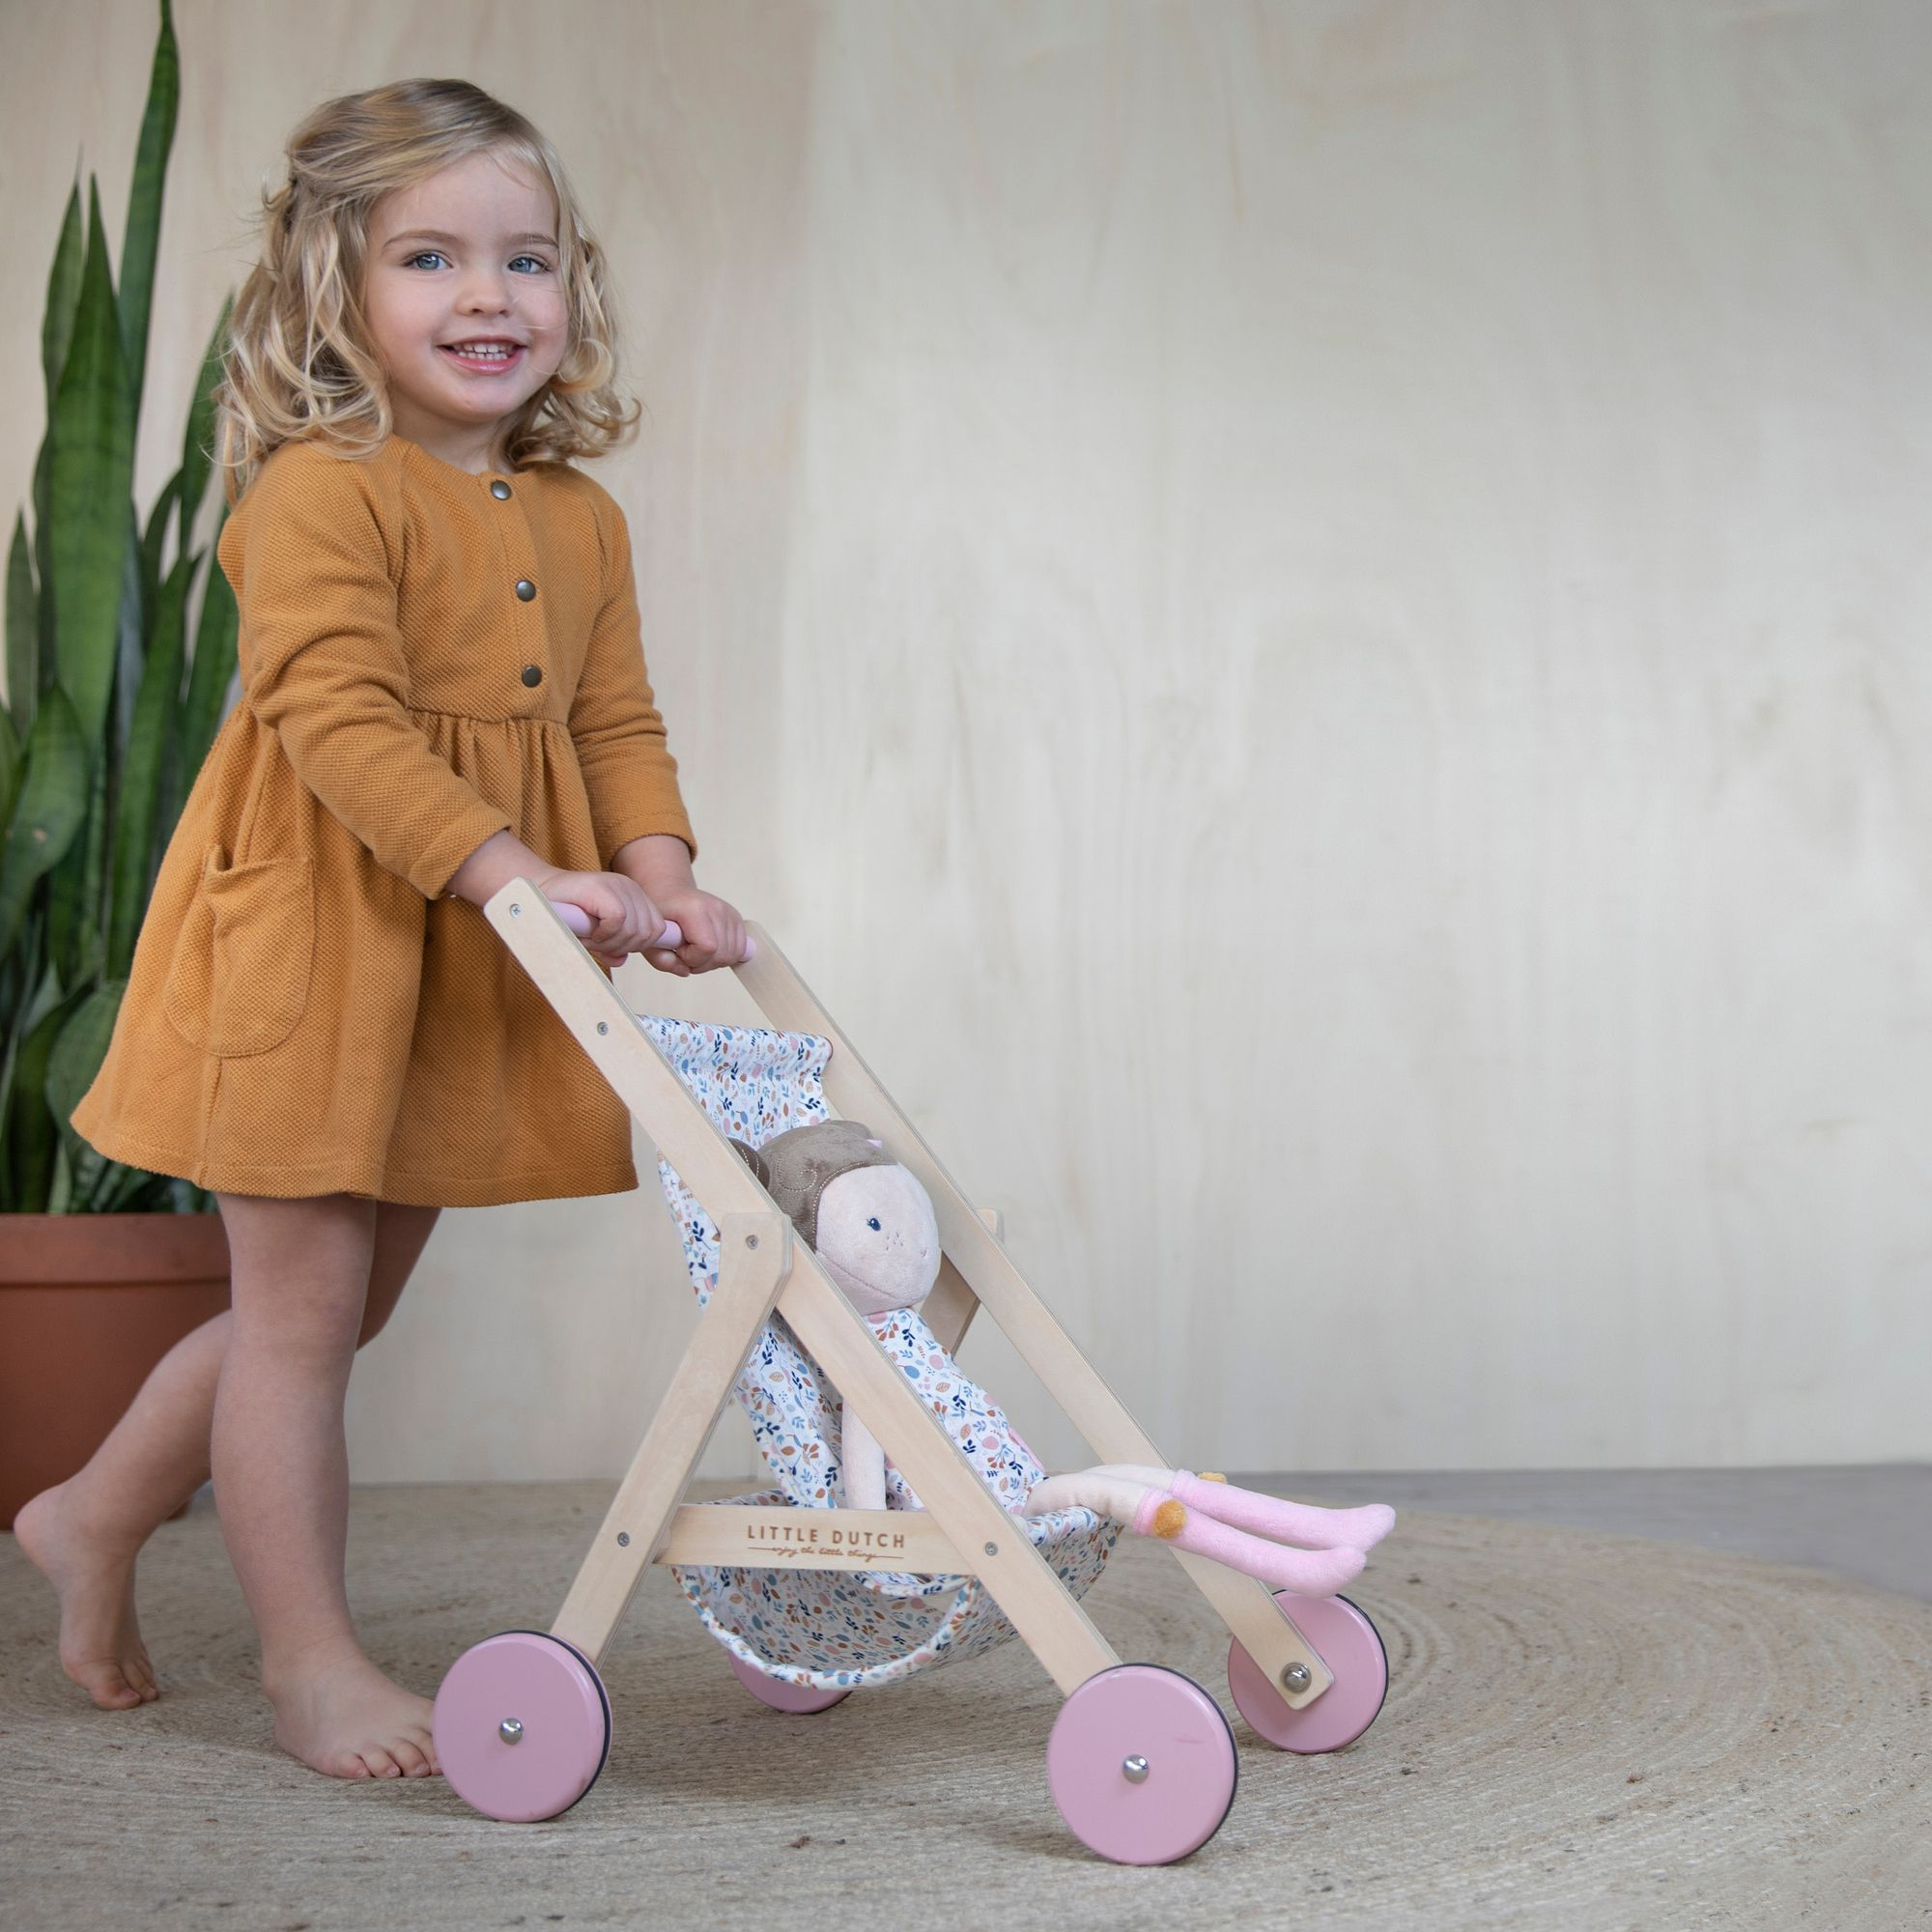 Take your doll for a walk The wooden doll stroller has a